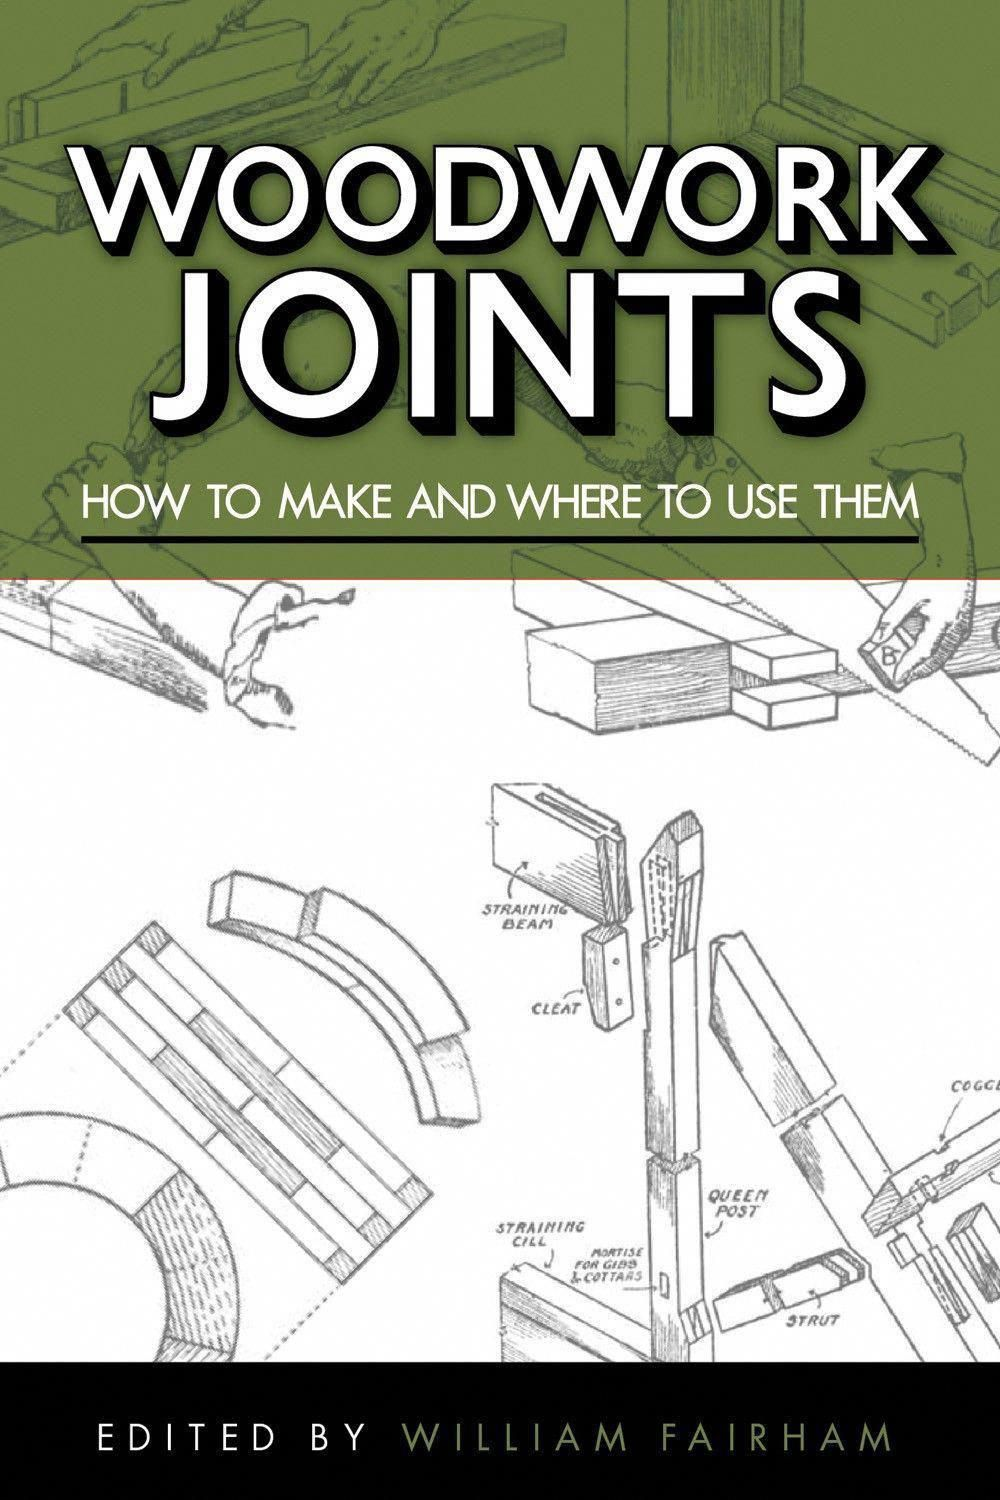 Woodwork Joints in 2019 Woodworking joints, Woodworking